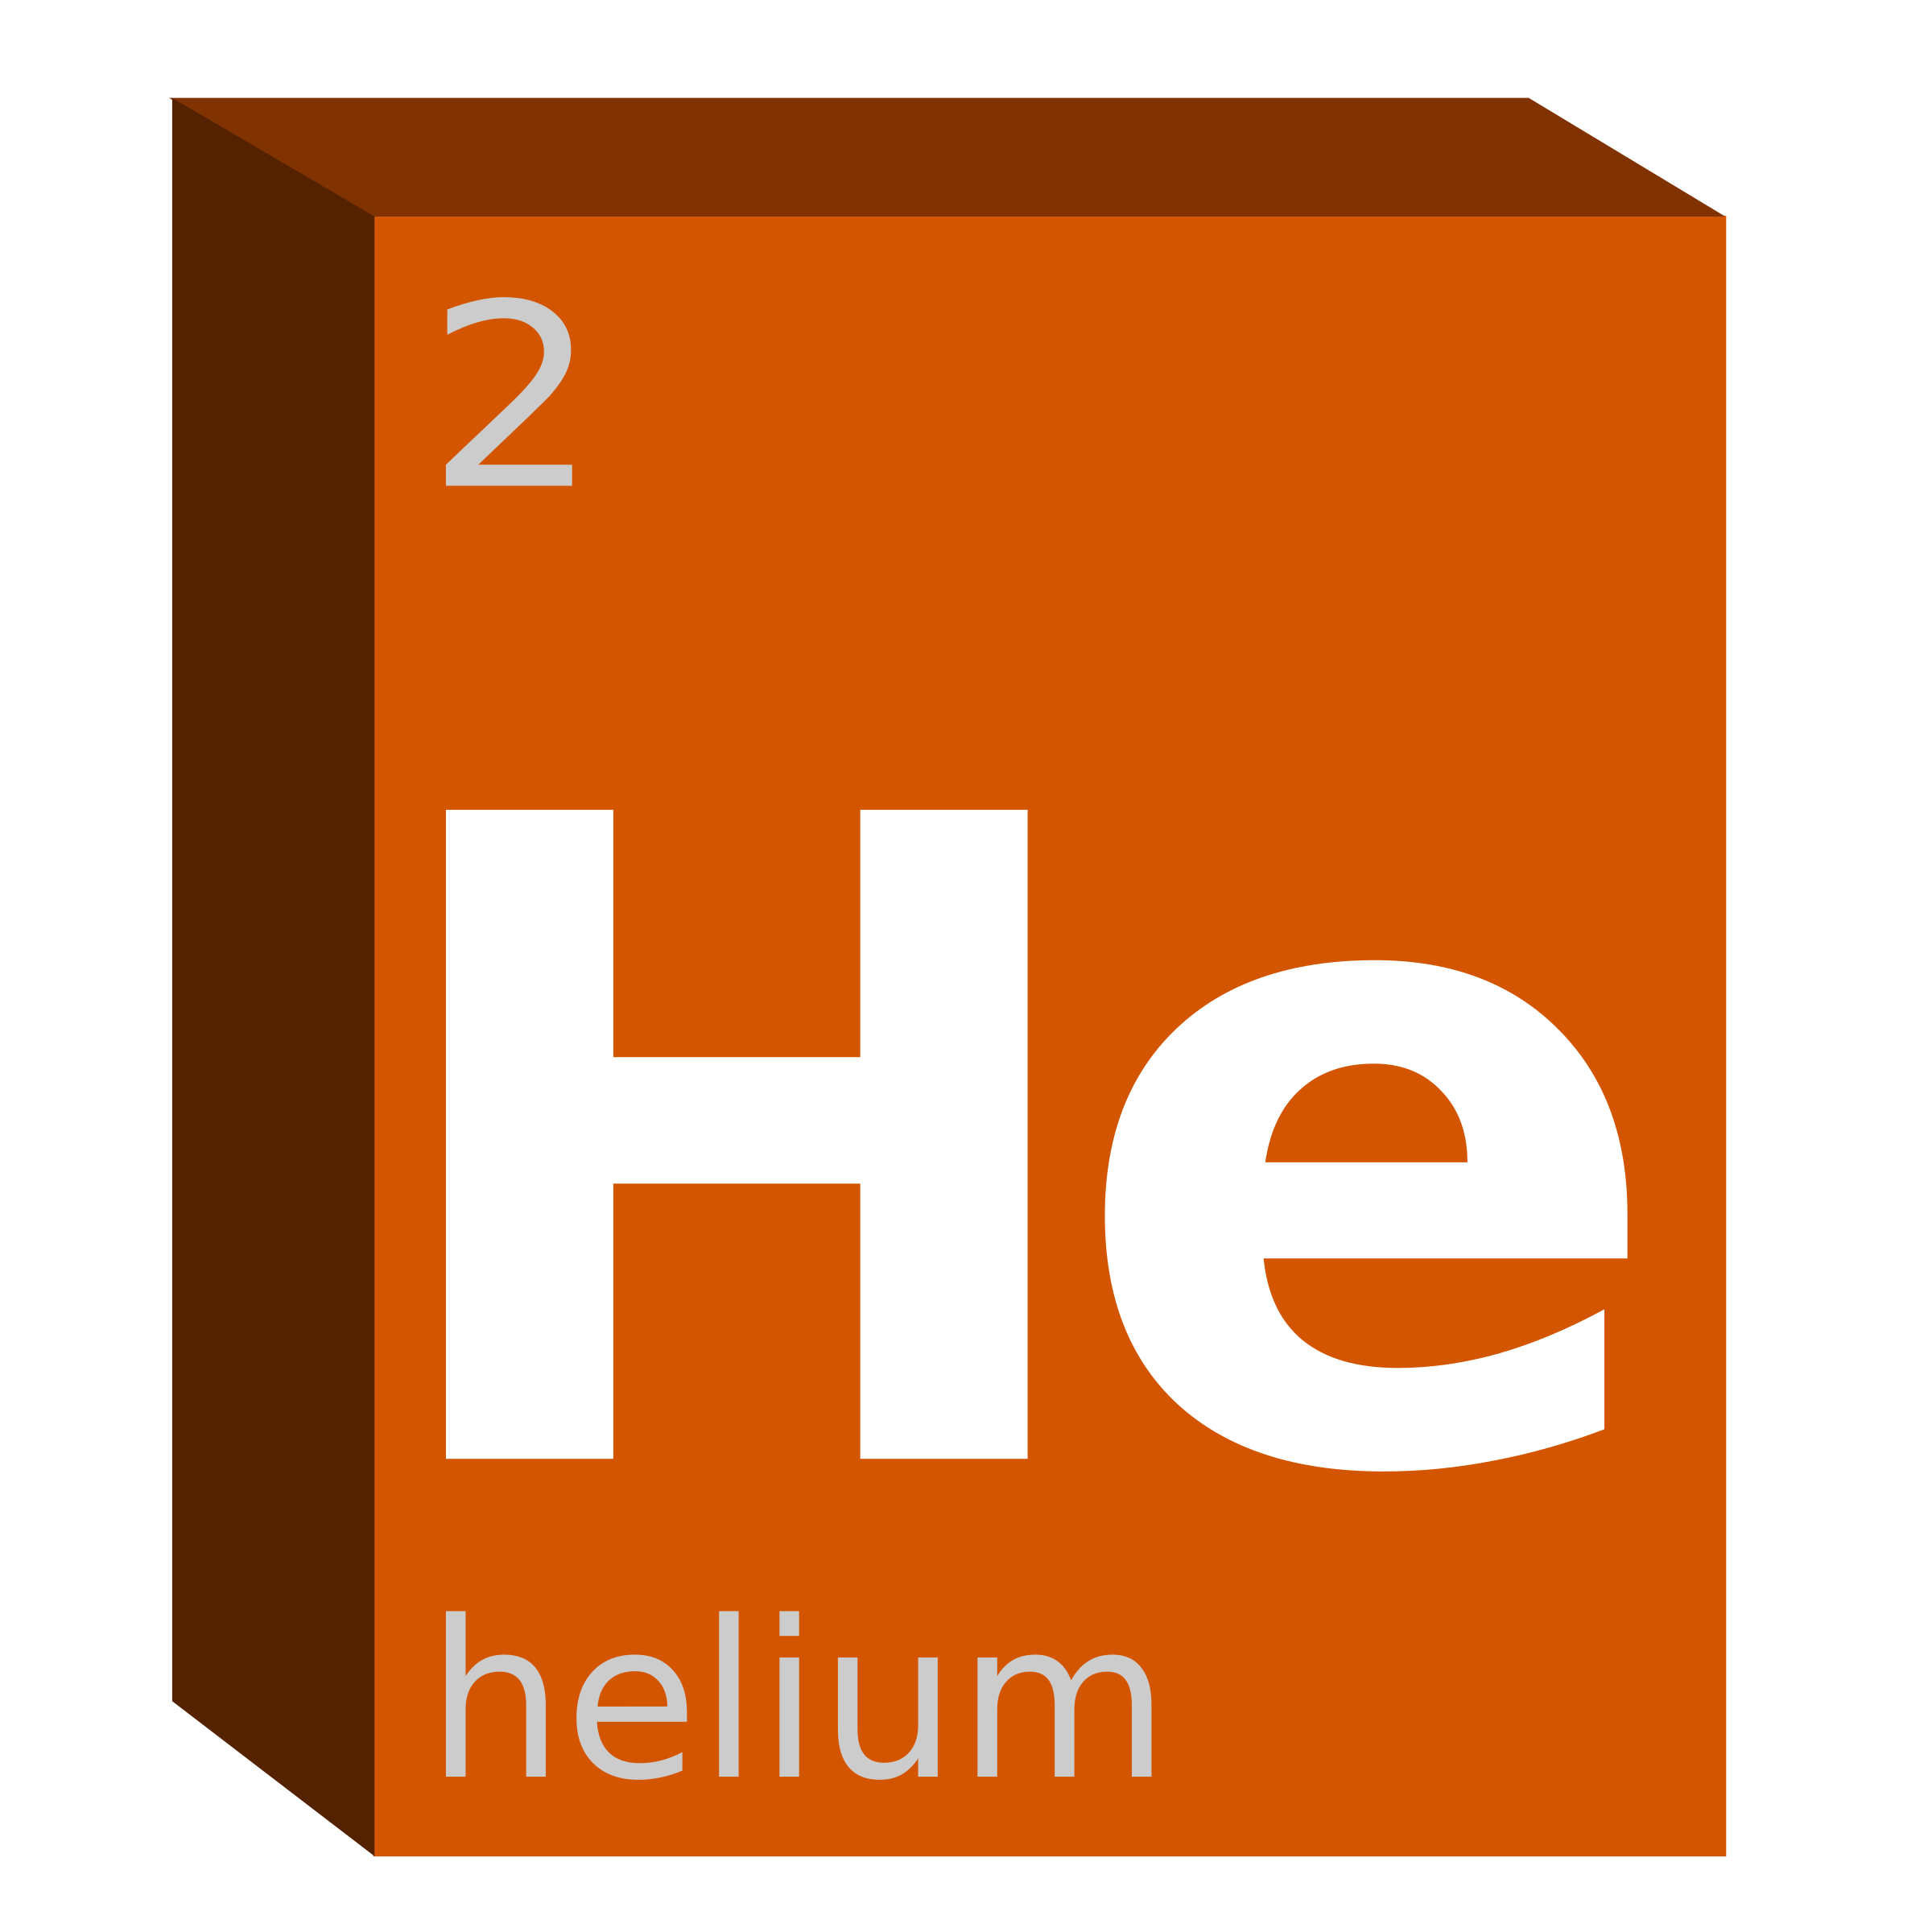 Elements clipart nature Chemistry Clipart (He) Helium Block